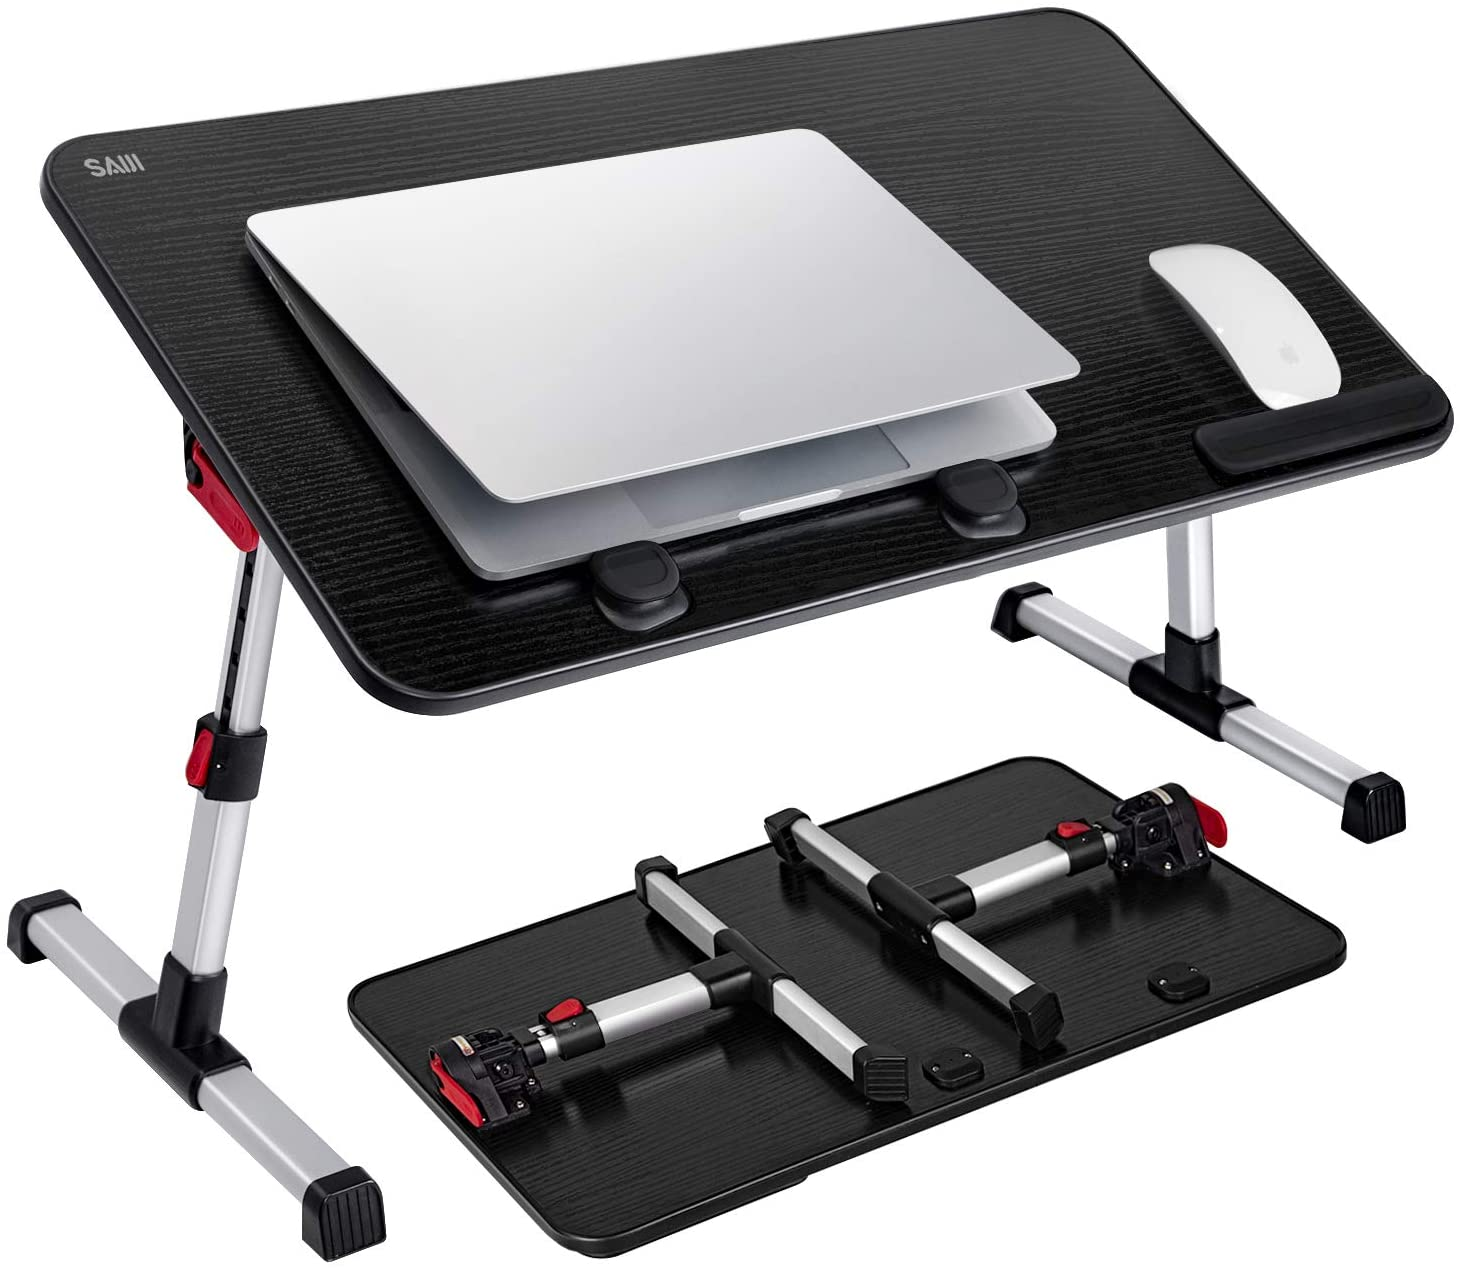 Top 15 Laptop Bed Table Desks (Lapdesks) of [year] 14